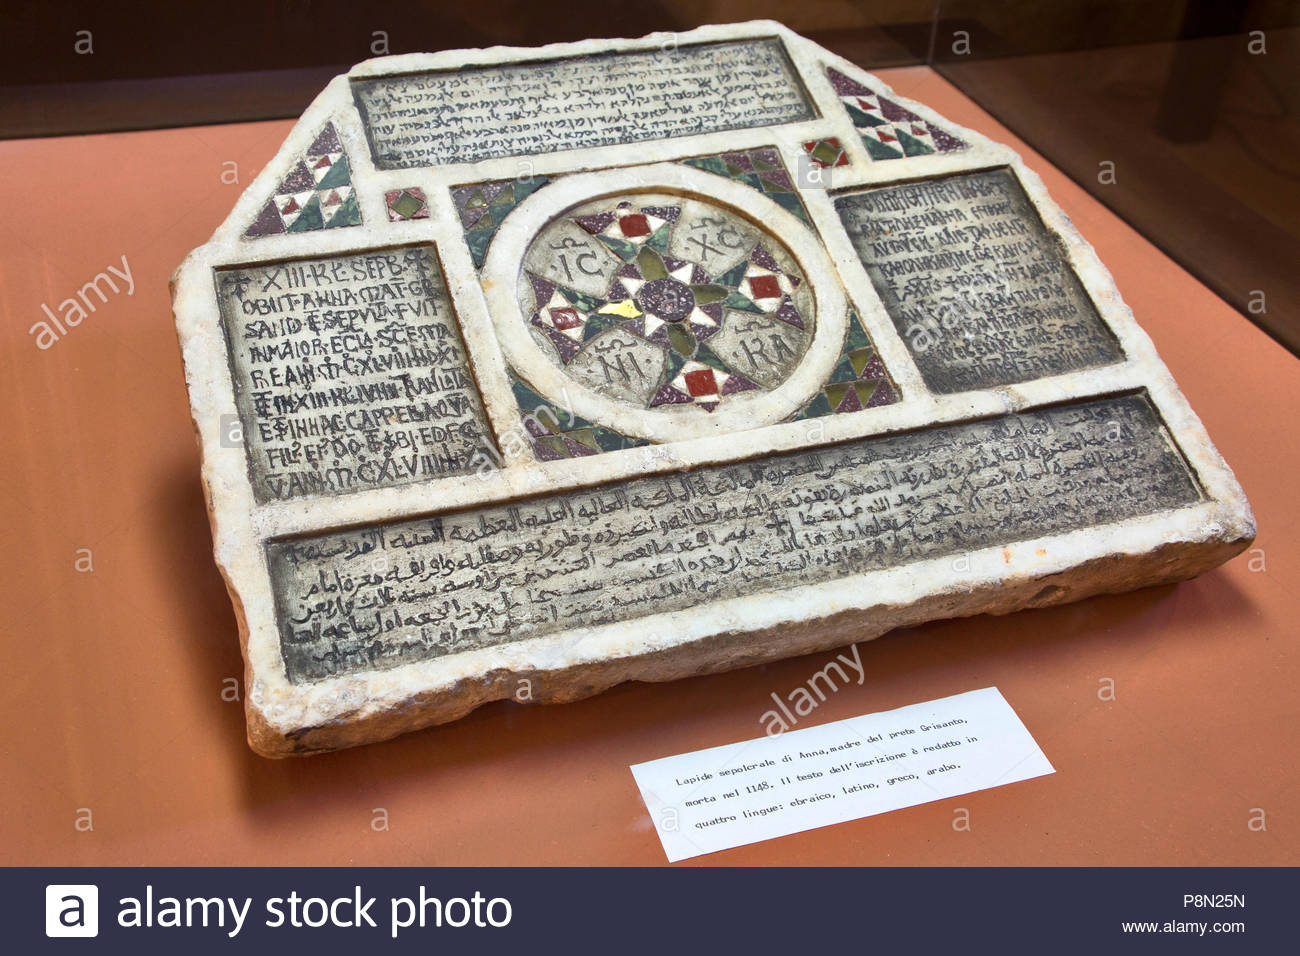 Italy, Sicily, Palermo, La Zisa, arab art museum -Sepulchral tombstone of Anna mother of the priest Garisanto died in 1148 - The inscription is in 4 languages: Hebrew, Latin, Greek and Arabic - Stock Image